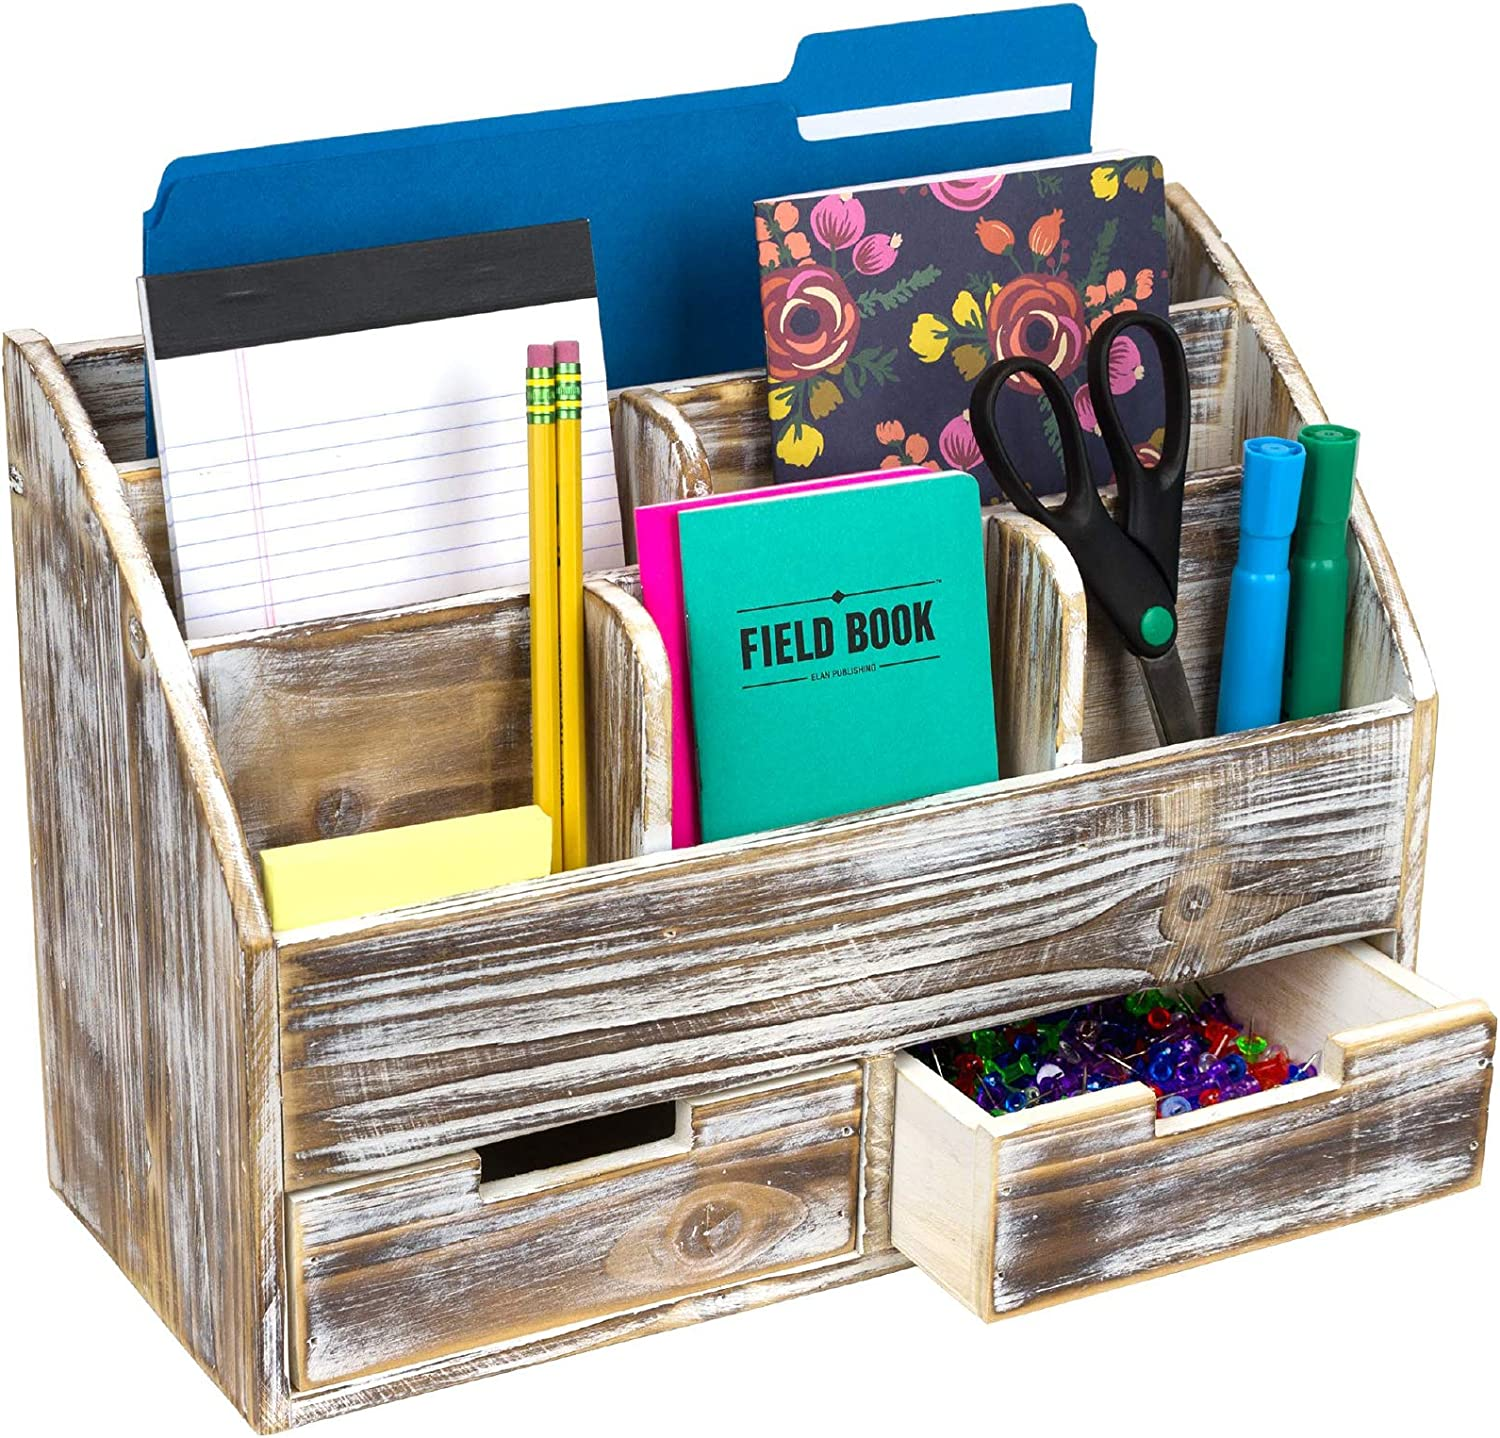 Rustic Wood Office Desk Organizer: Includes 6 Compartments and 2 Drawers to Organize Desk Accessories, Mail, Pens, Notebooks, Folders, Pencils and Office Supplies (Brown)